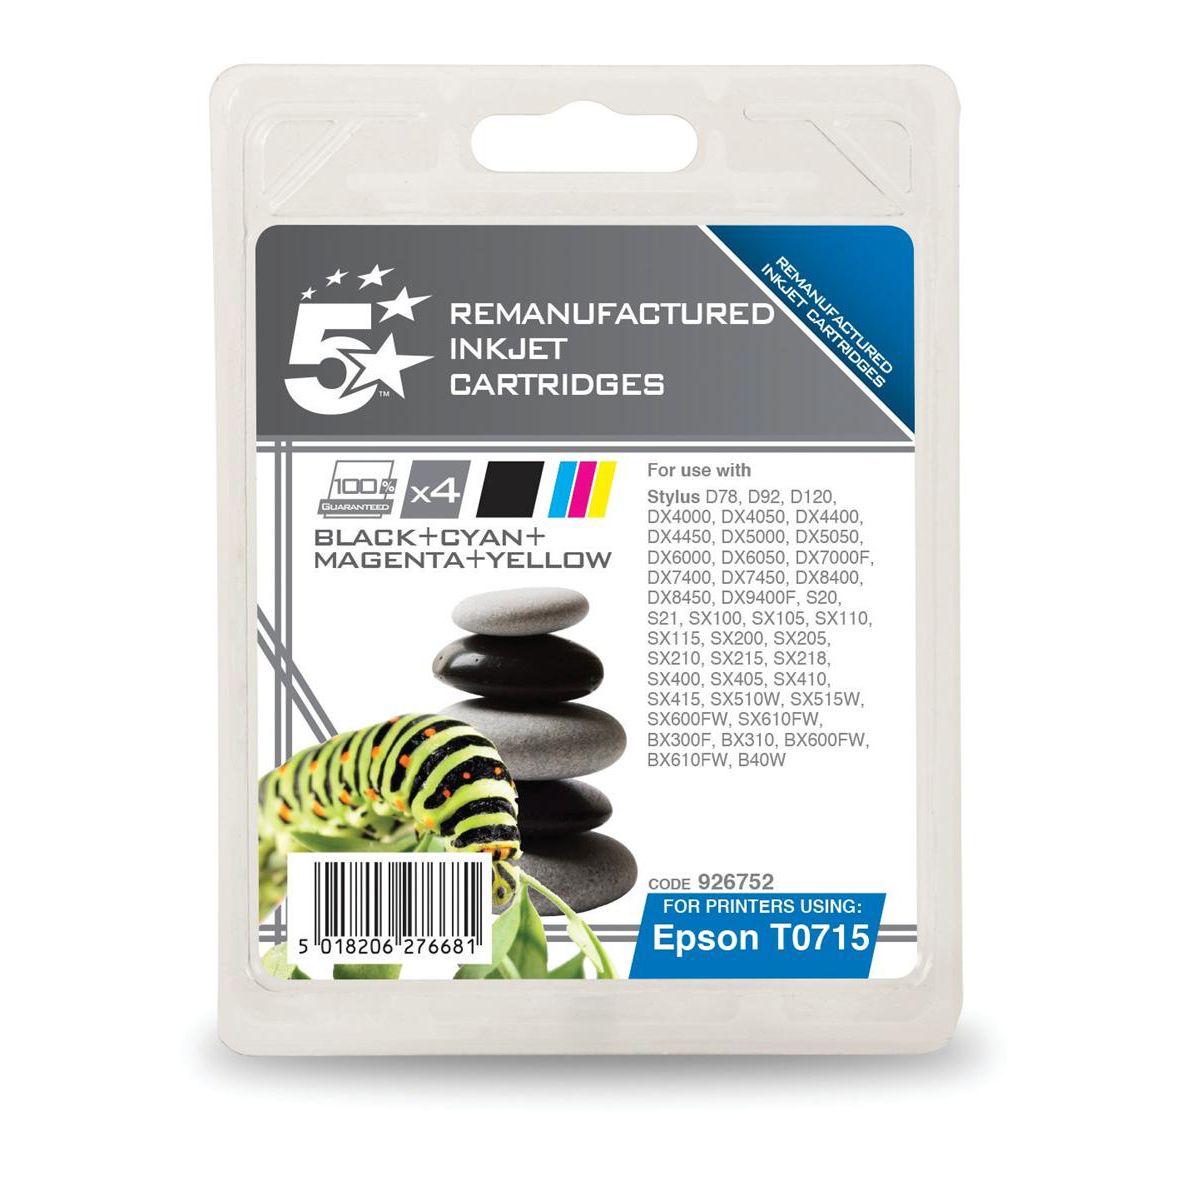 5StarOfficeRemanufactured IJ Cartridges 5.5ml Blk/Cyan/Magenta/Yellow[Epson T071540 Alternative] [Pack 4]